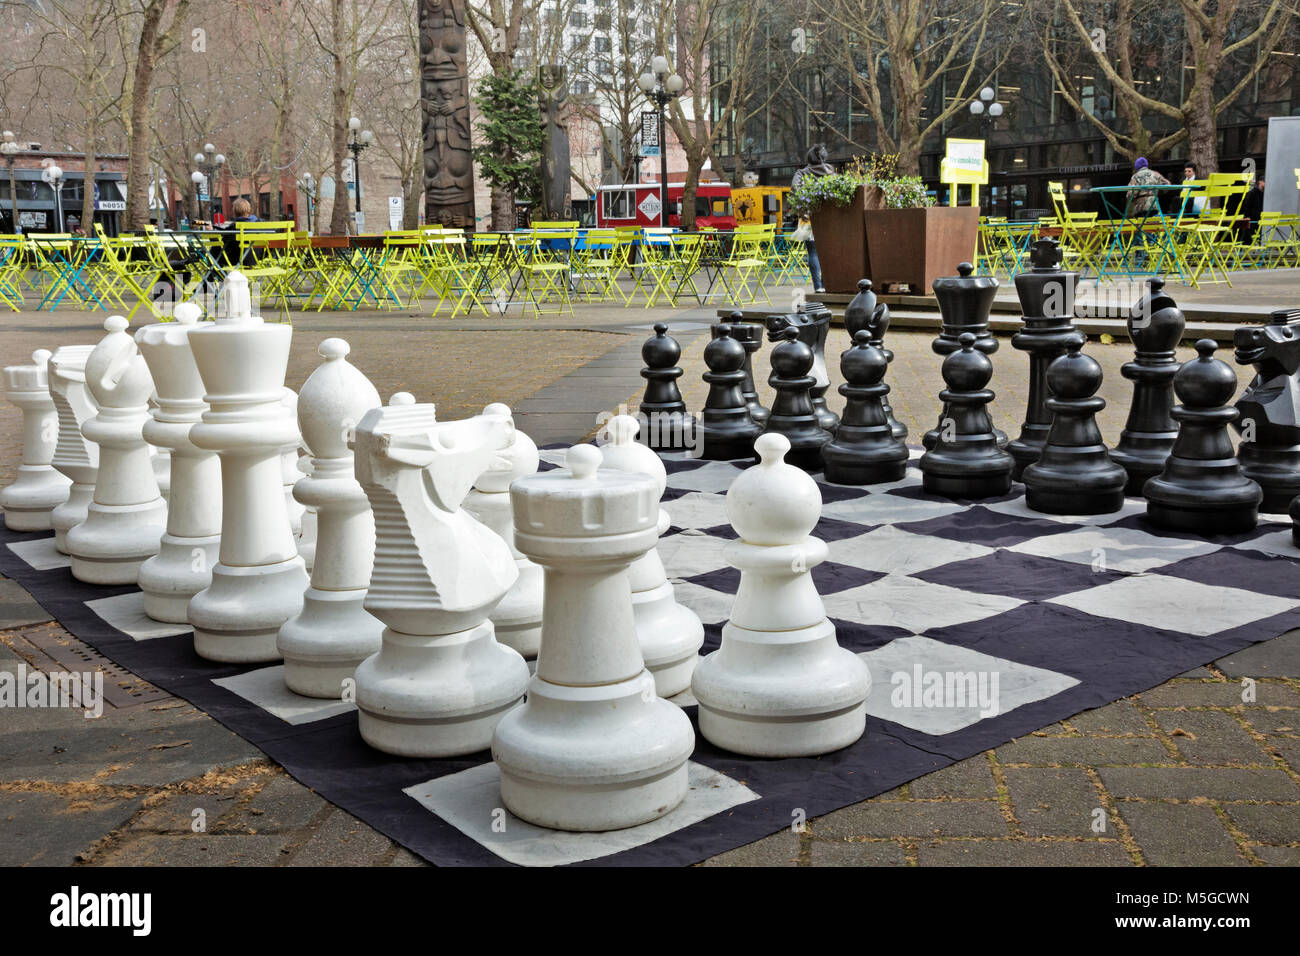 WASHINGTON   Large Outdoor Chess Set As Well As Tables, Chairs, Ping Pong  Tables And Foos Ball Games Set Out For A Fun Place To While Awa